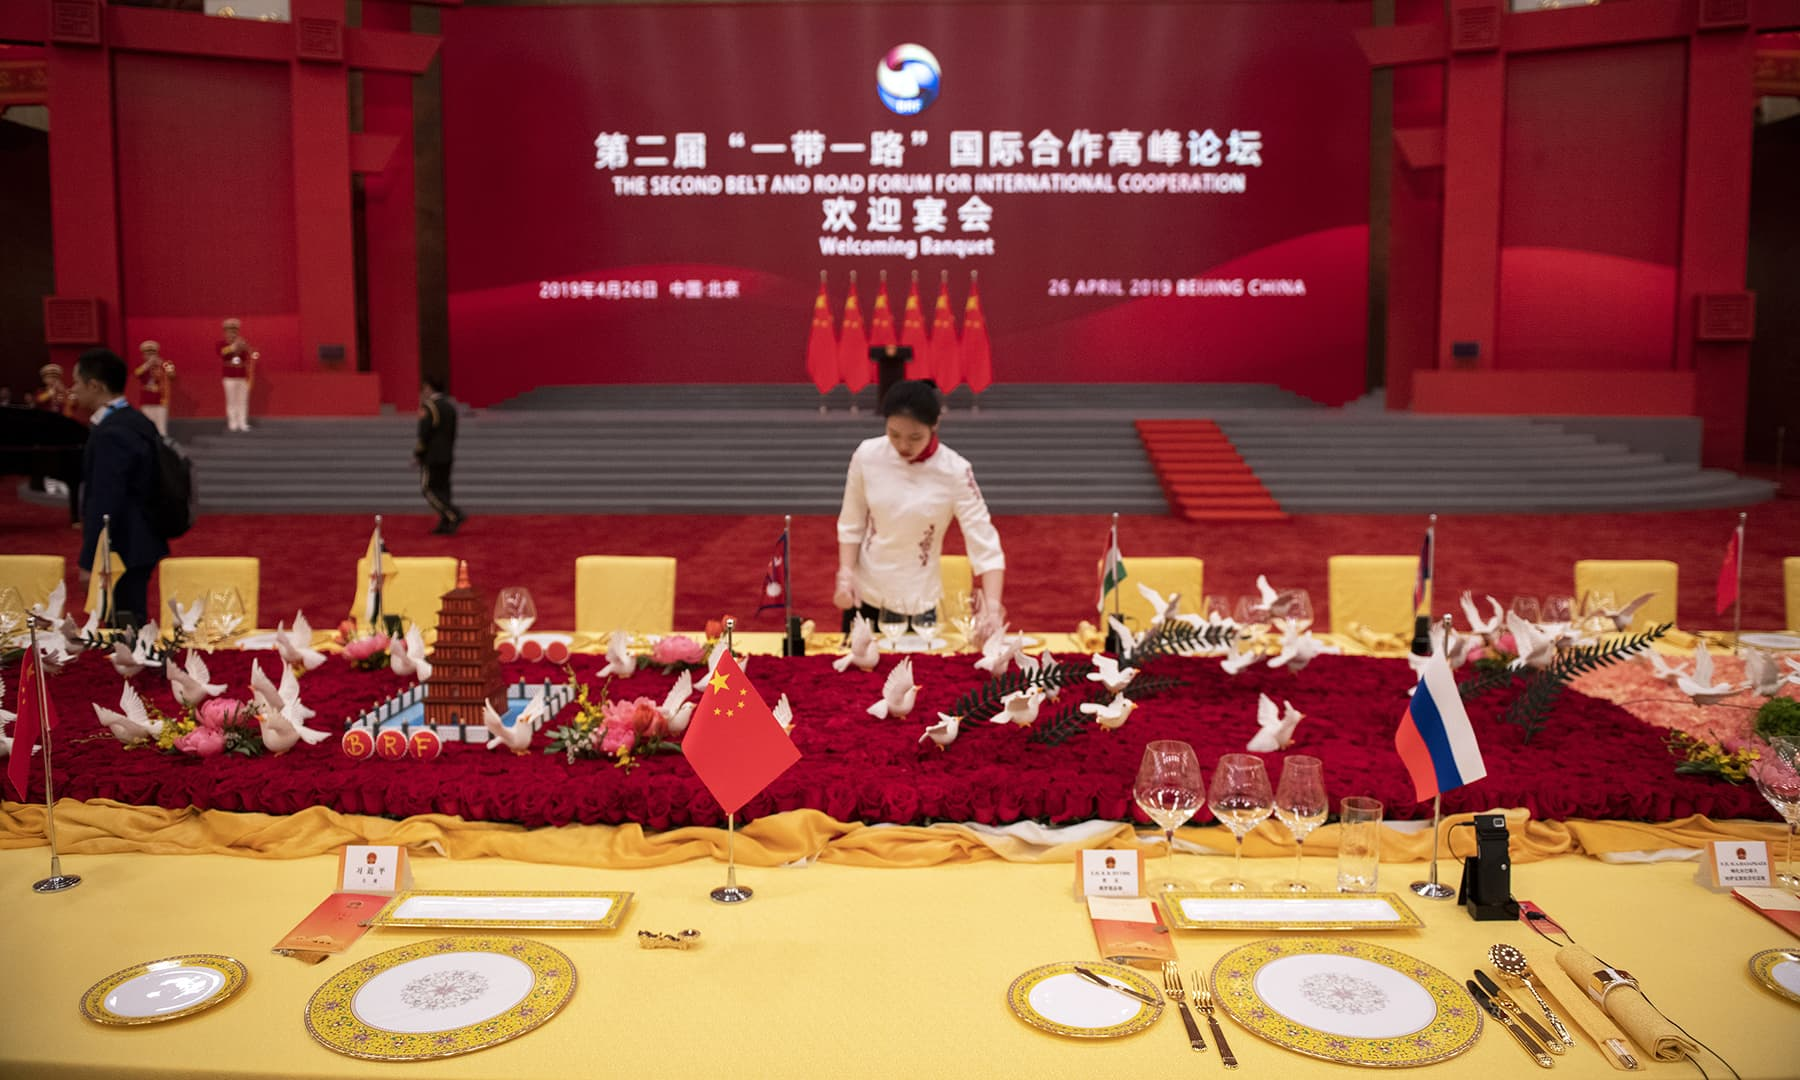 Russian President Vladimir Putin table seat is seen with a full set and Chinese President Xi Jinping table spot, left, is seen without a set yet placed on the table, which are put at the last minute ahead of a welcome banquet for the visiting leaders. — AFP